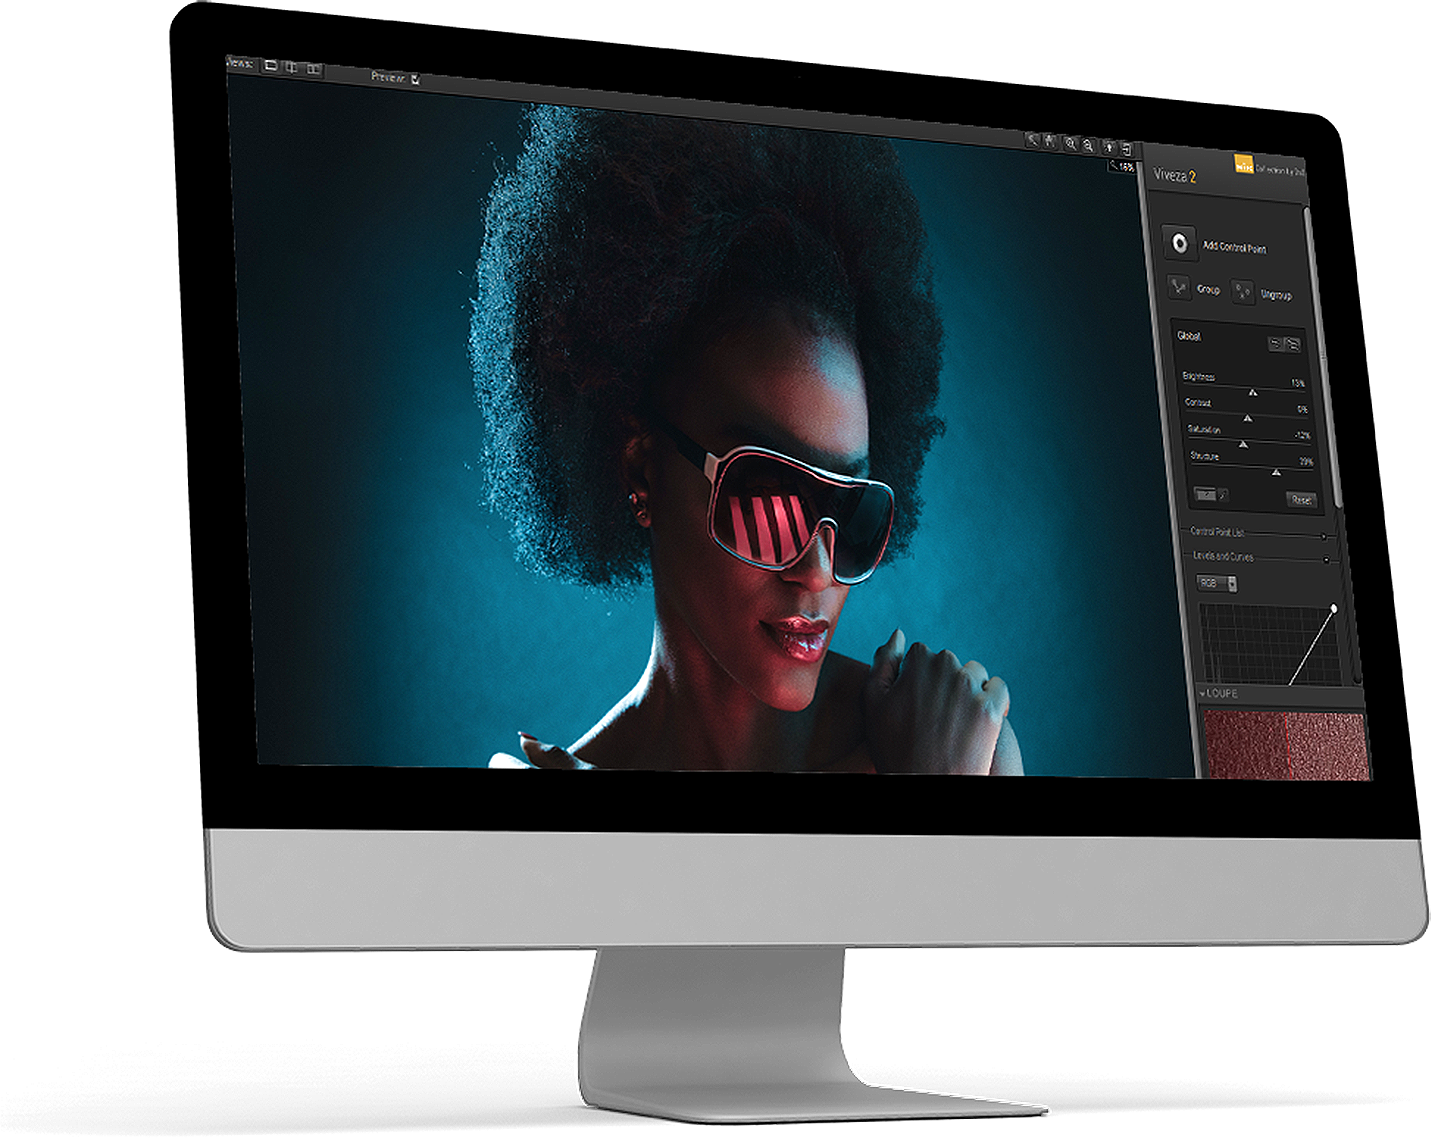 New Nik Collection 3 by DxO - The Most Powerful Photo Editing Plugins